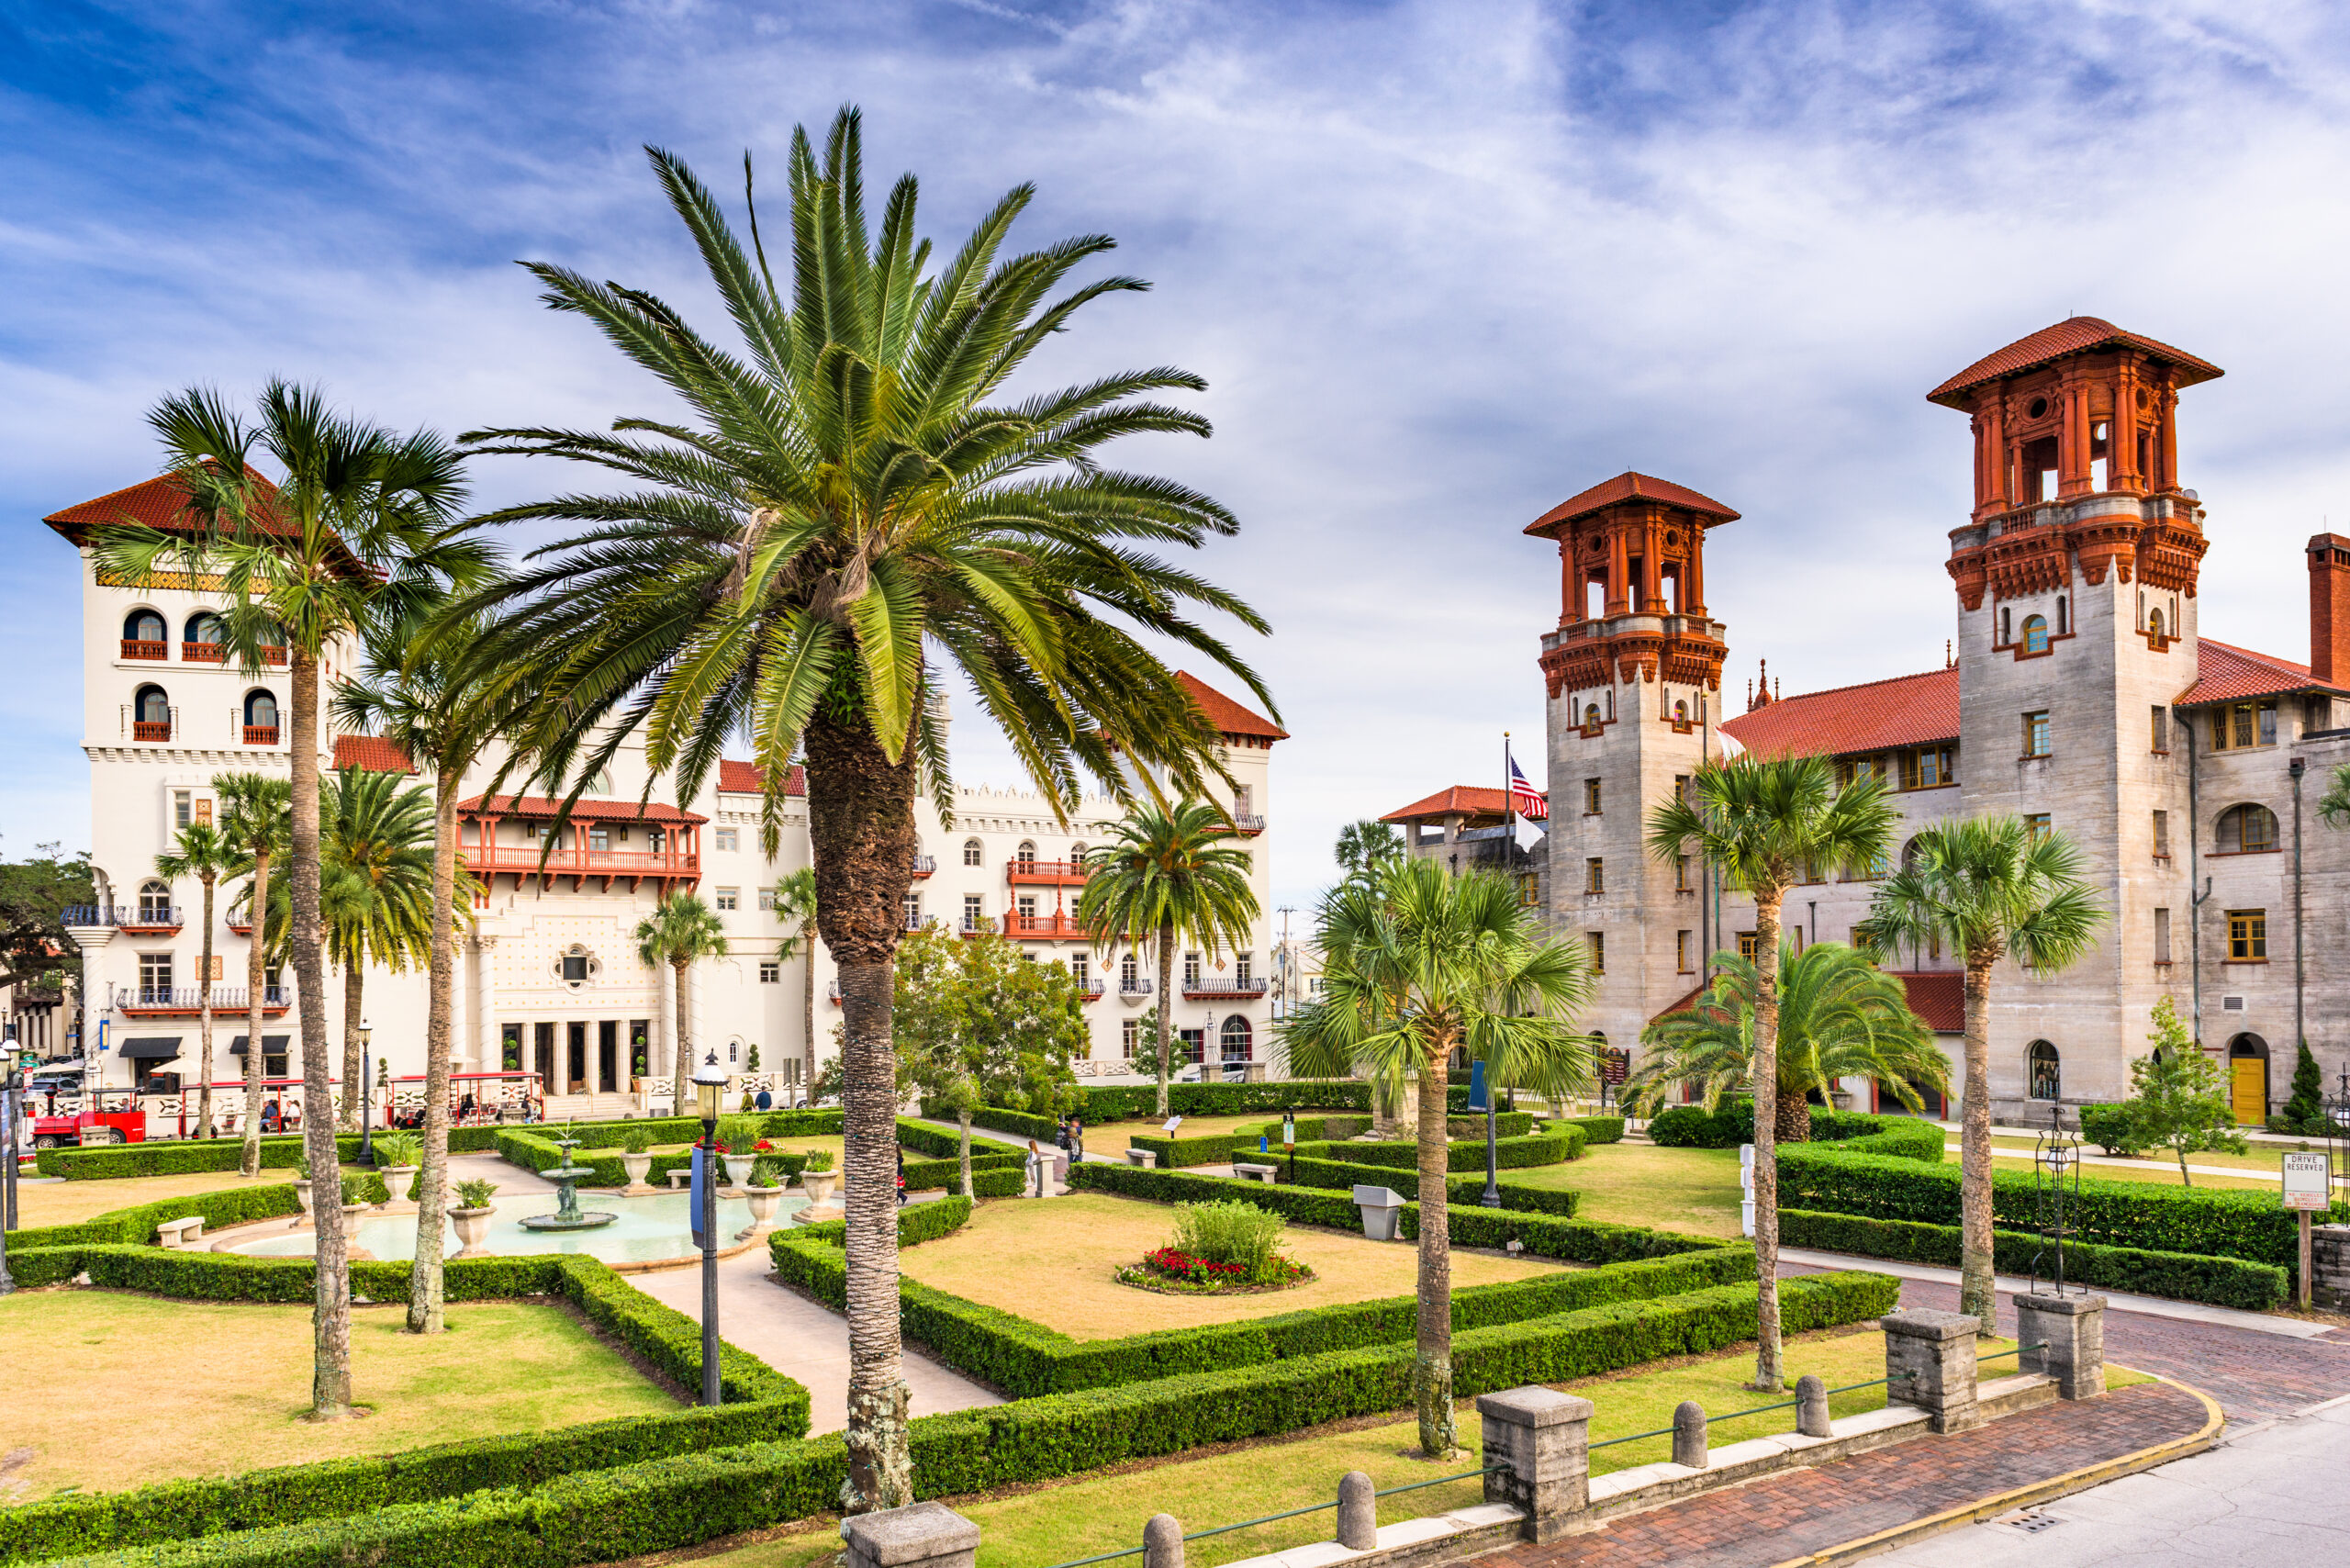 10 Top-Rated Day Trips from Orlando